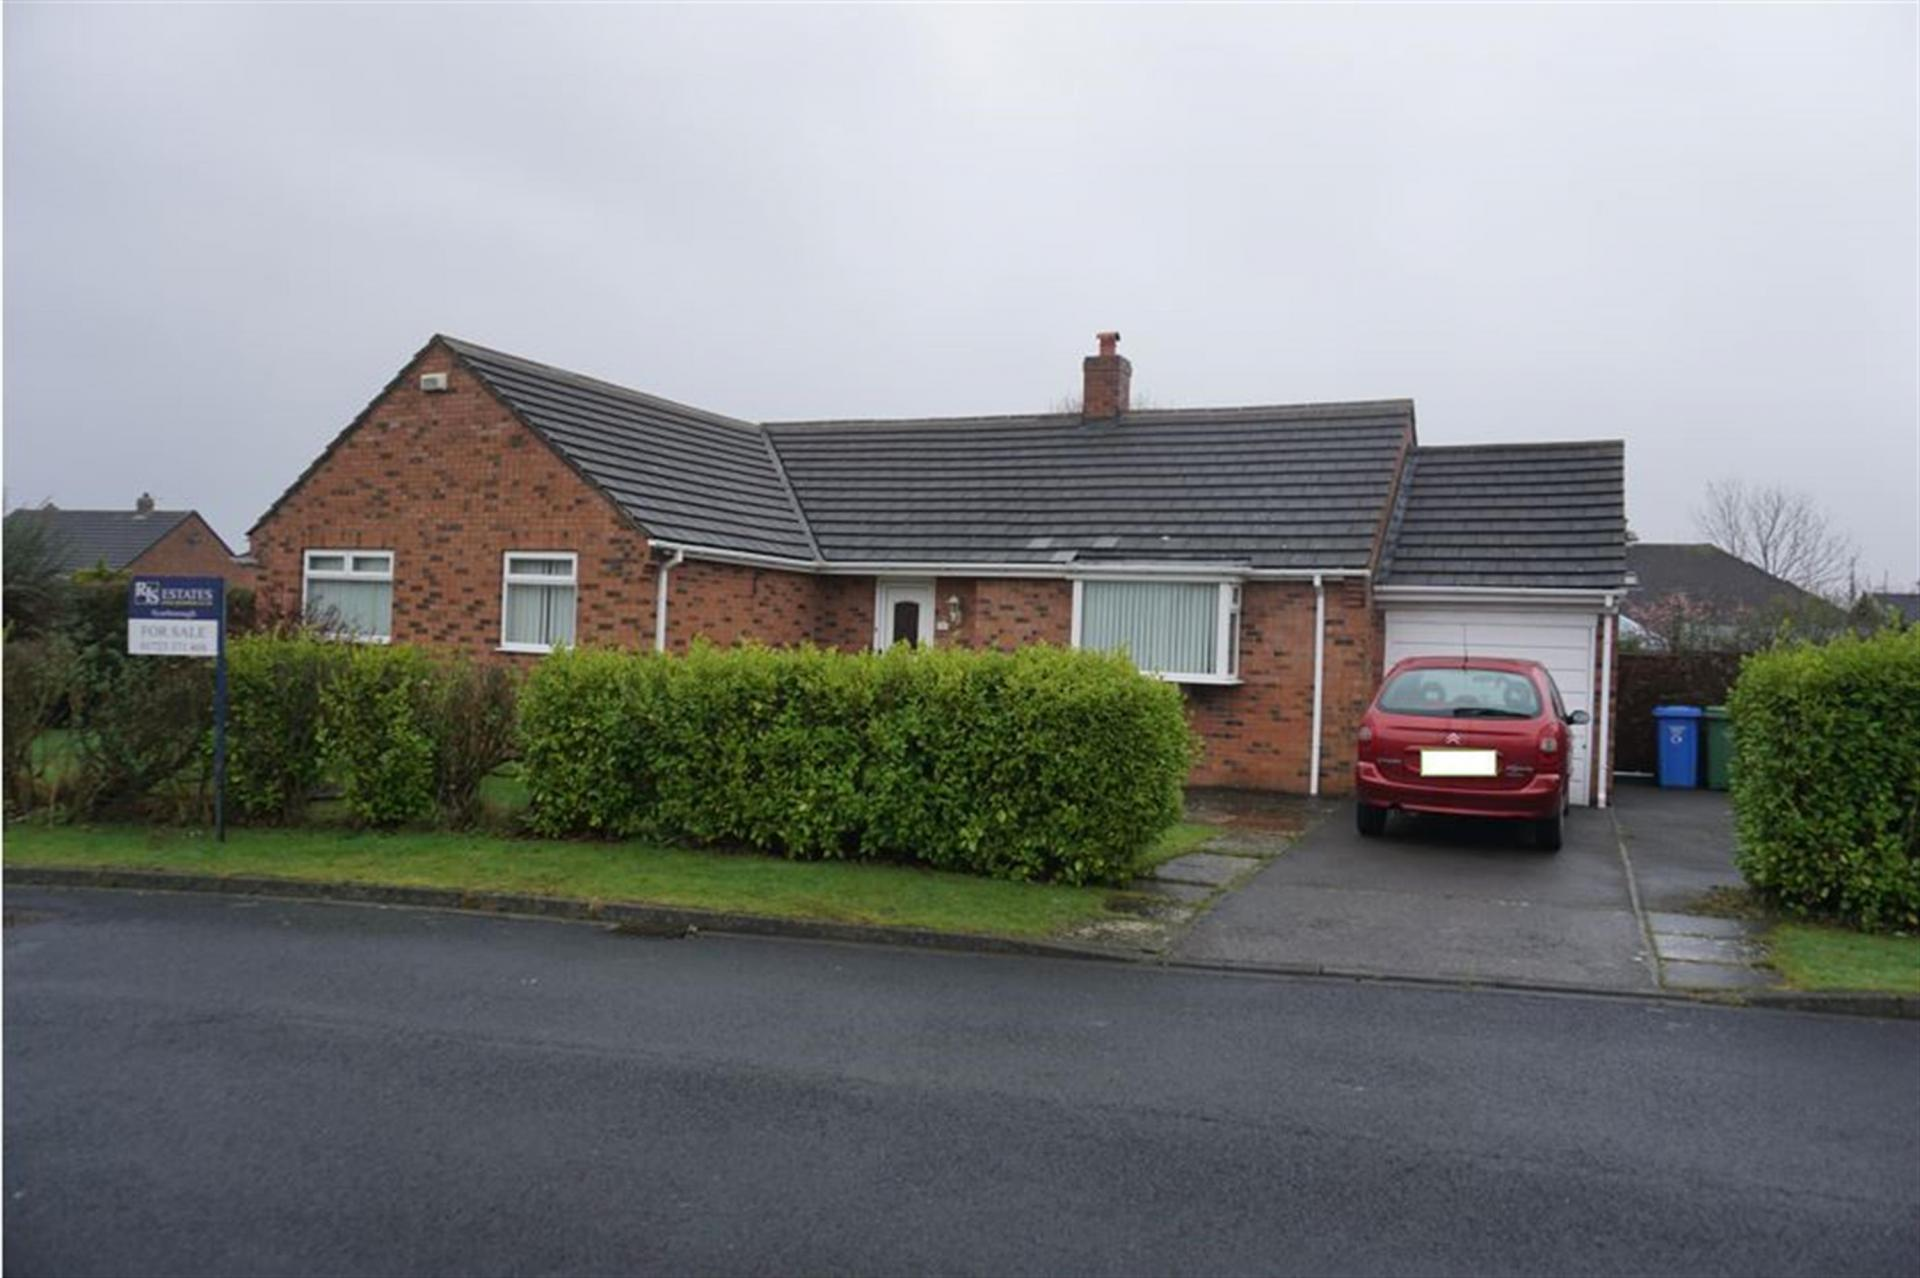 2 bedroom detached bungalow for sale in north yorkshire for Log cabins for sale north yorkshire